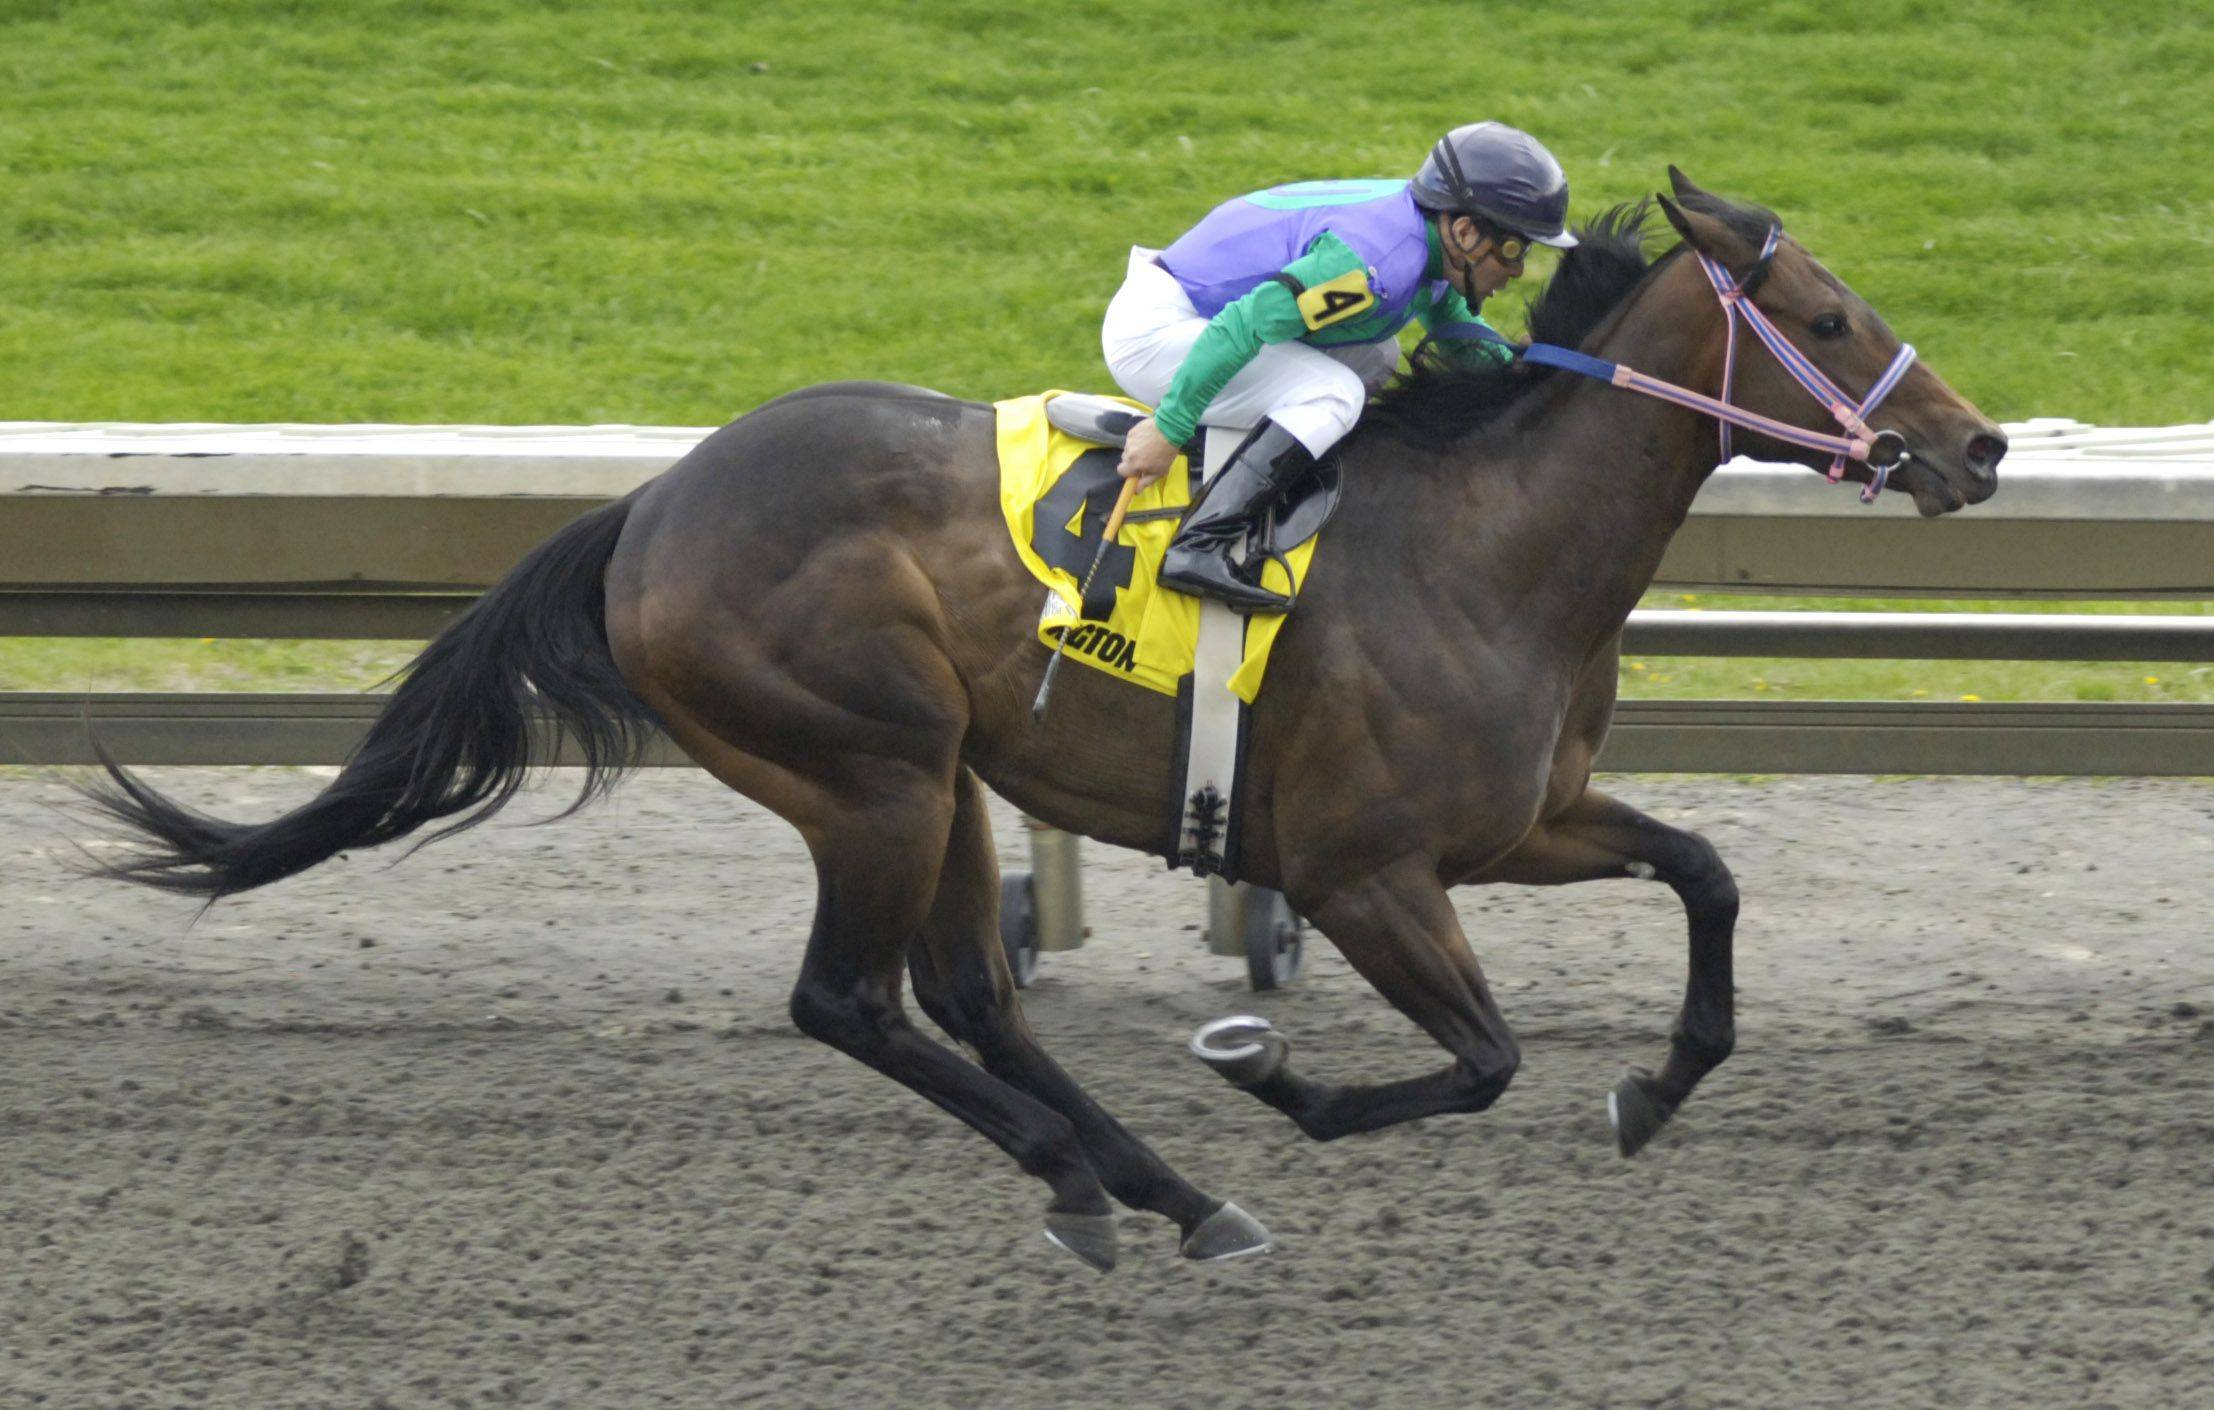 Royal Posh with jockey Eduardo Perez heads for the finish in the fourth race Friday.